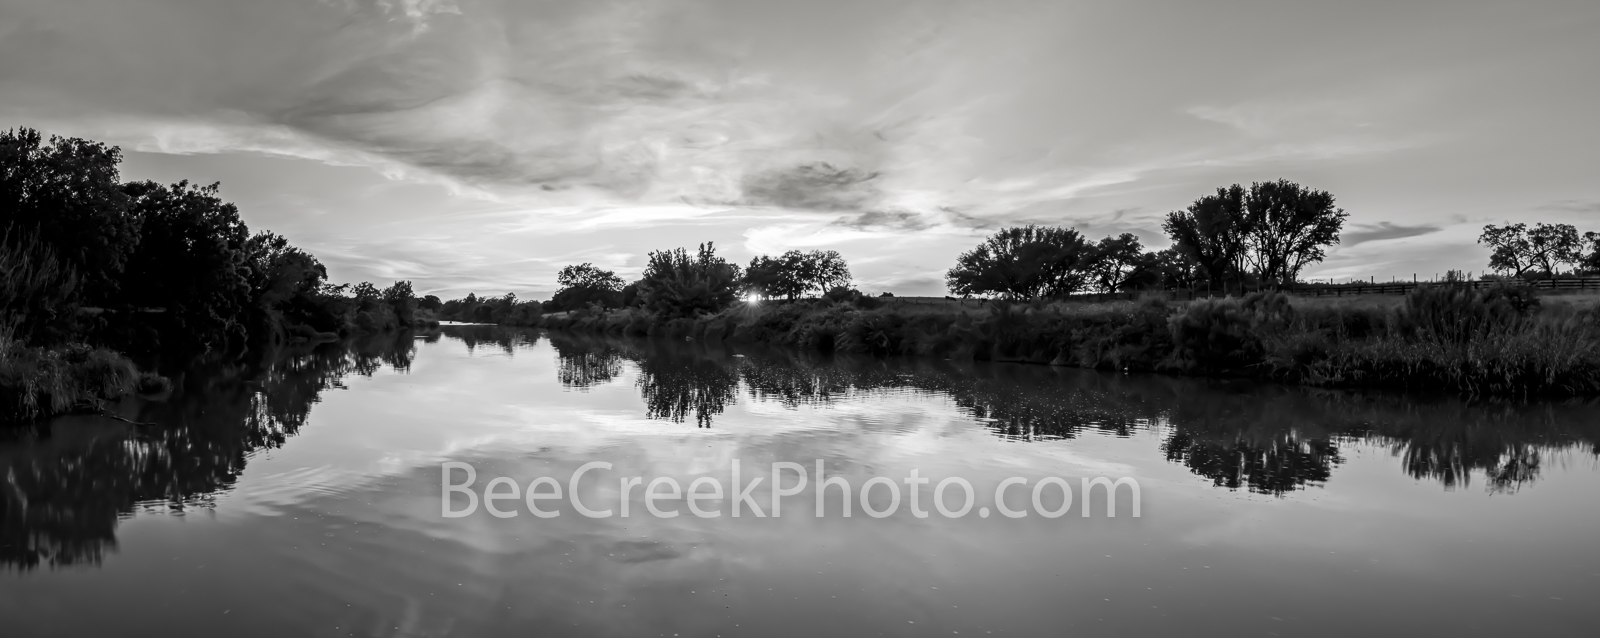 texas hill country, black and white, b w , new upload, hill country, sunset, pedernales river, texas landscape, panorama, pano, water, river, trees, rurals, colorado river, central texas,  texas. rura, photo